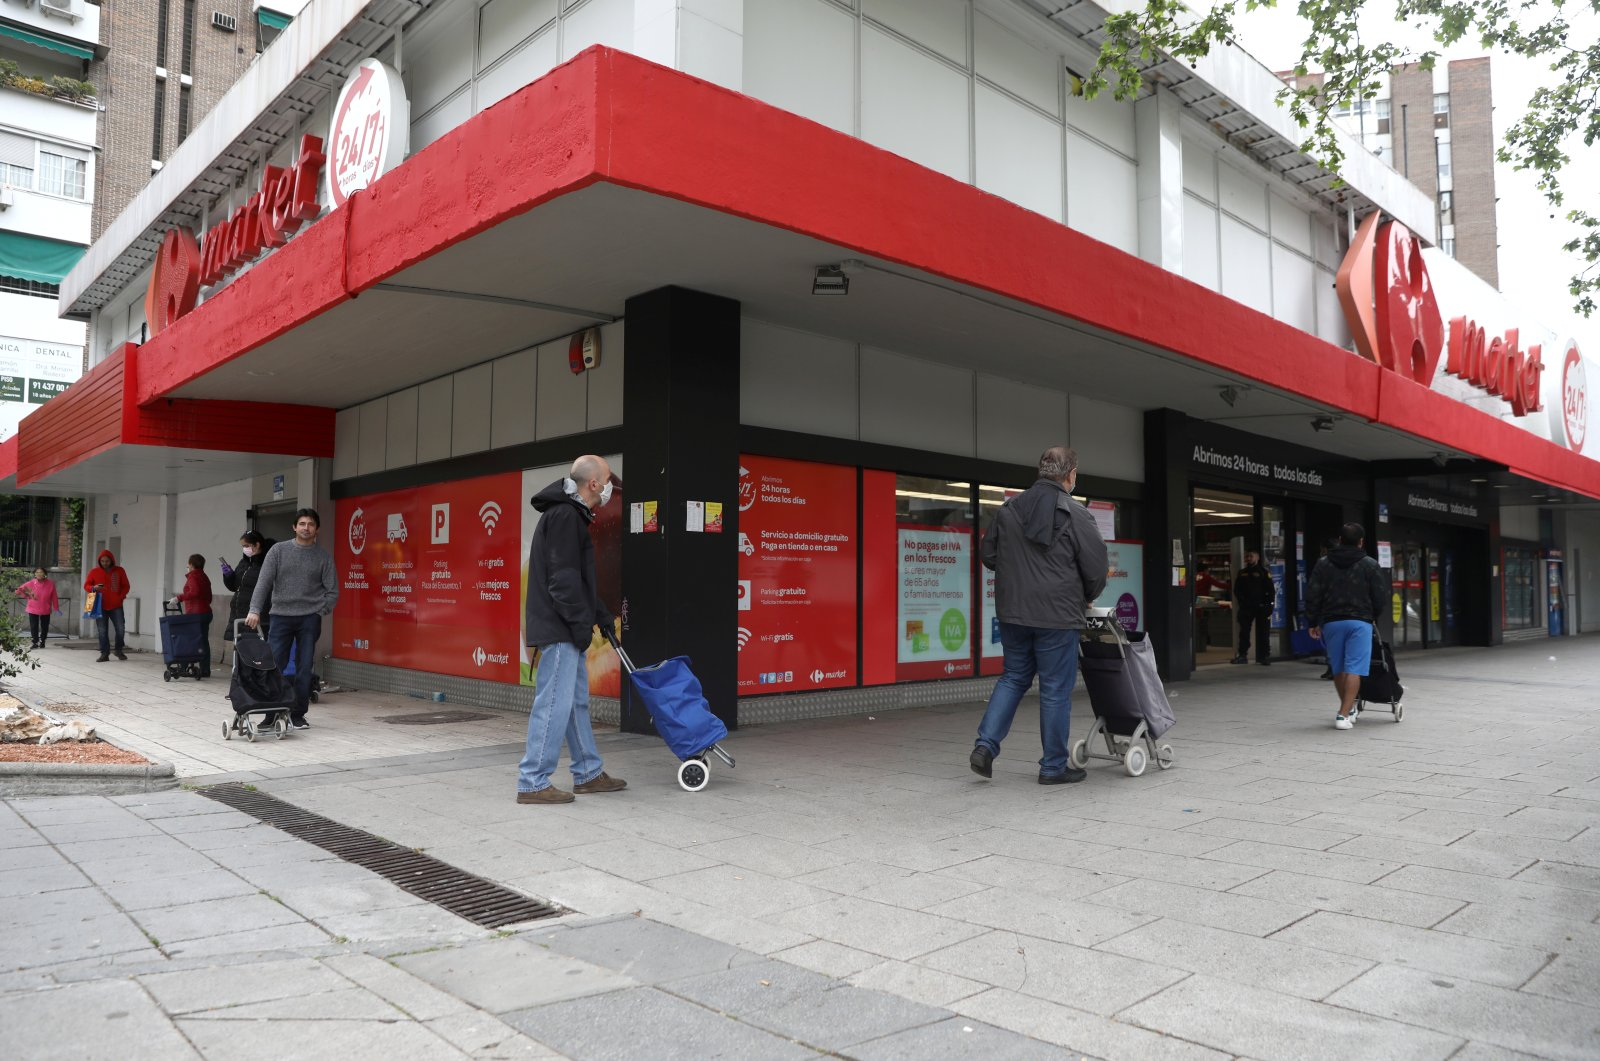 People maintain social distance as they queue outside a supermarket amid the coronavirus outbreak in Madrid, Spain, April 9, 2020. (Reuters Photo)